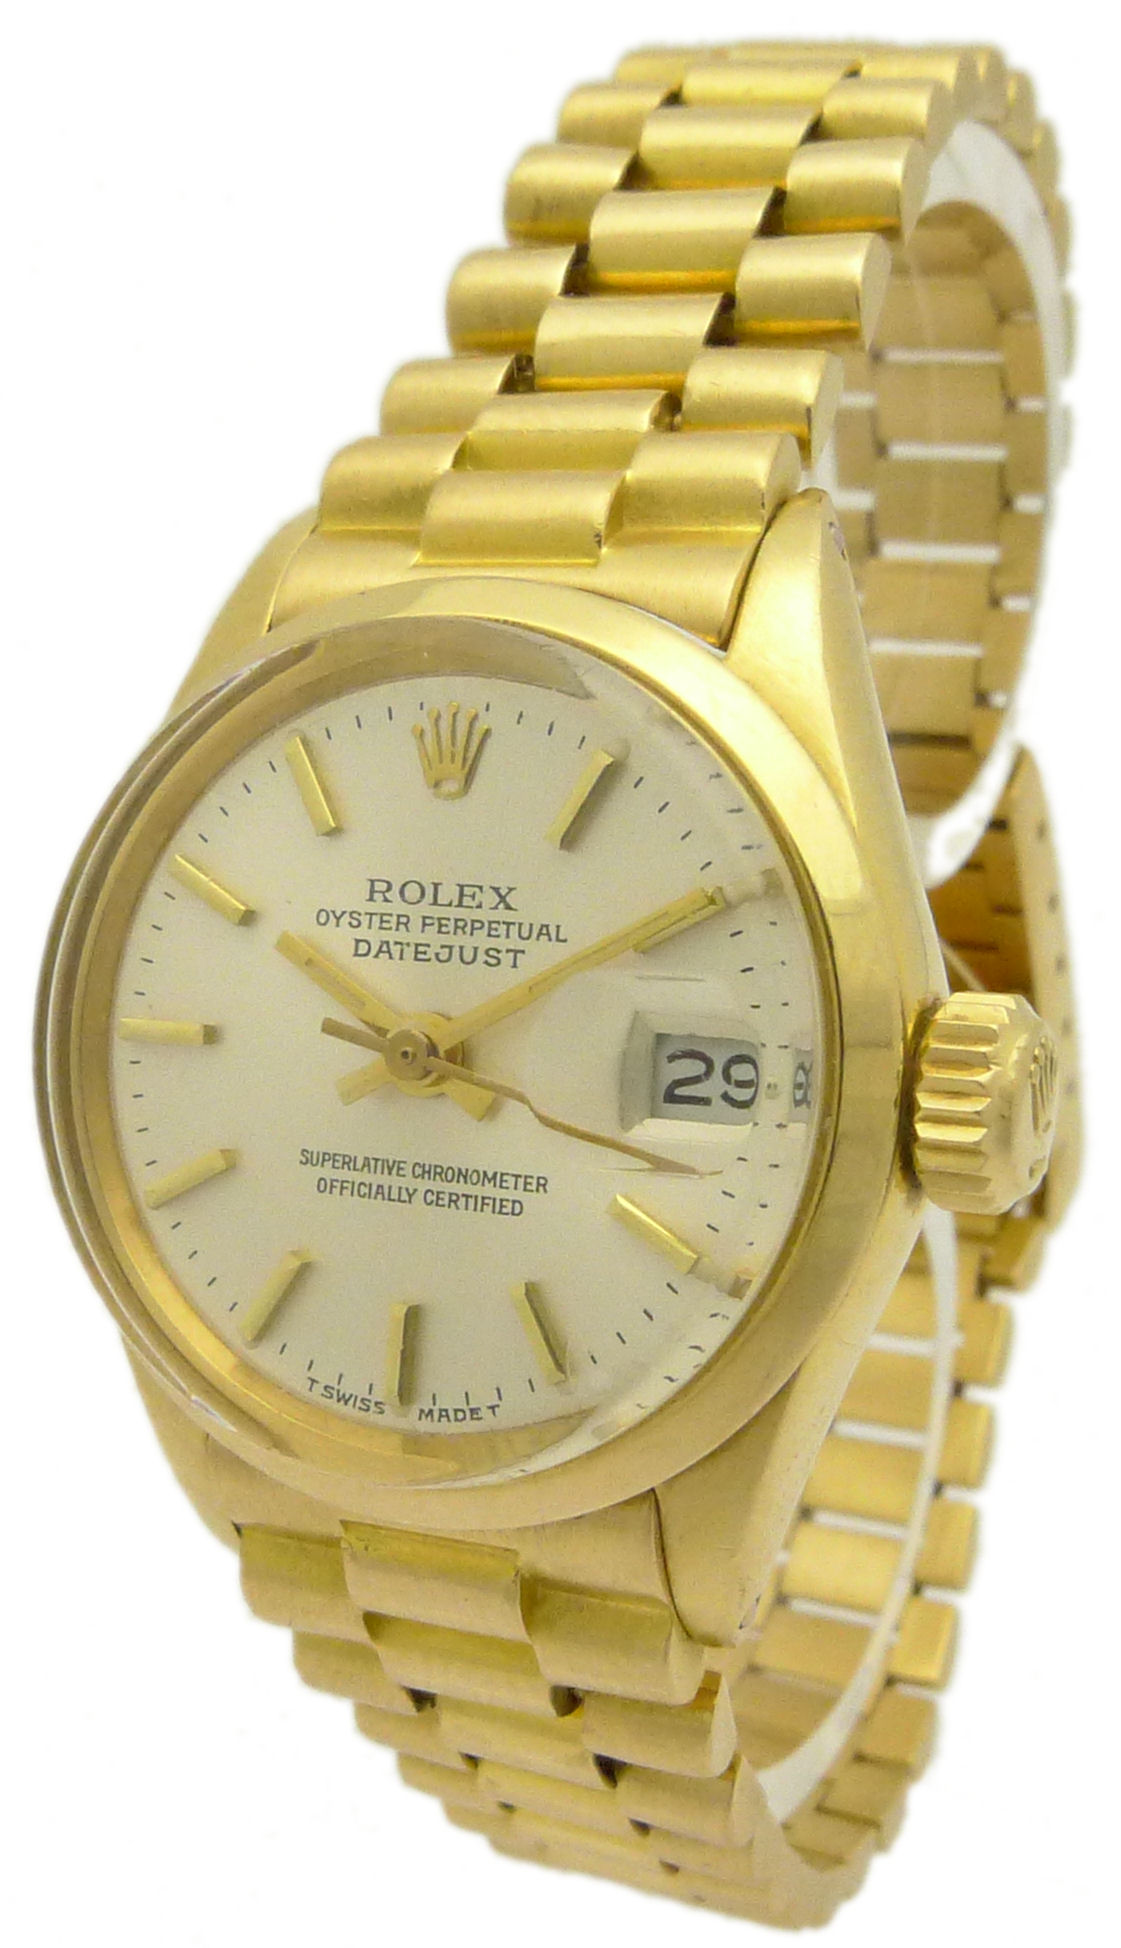 rolex lady datejust pr sident damenuhr ref 6516 18 kt gold mit zertifikat ebay. Black Bedroom Furniture Sets. Home Design Ideas